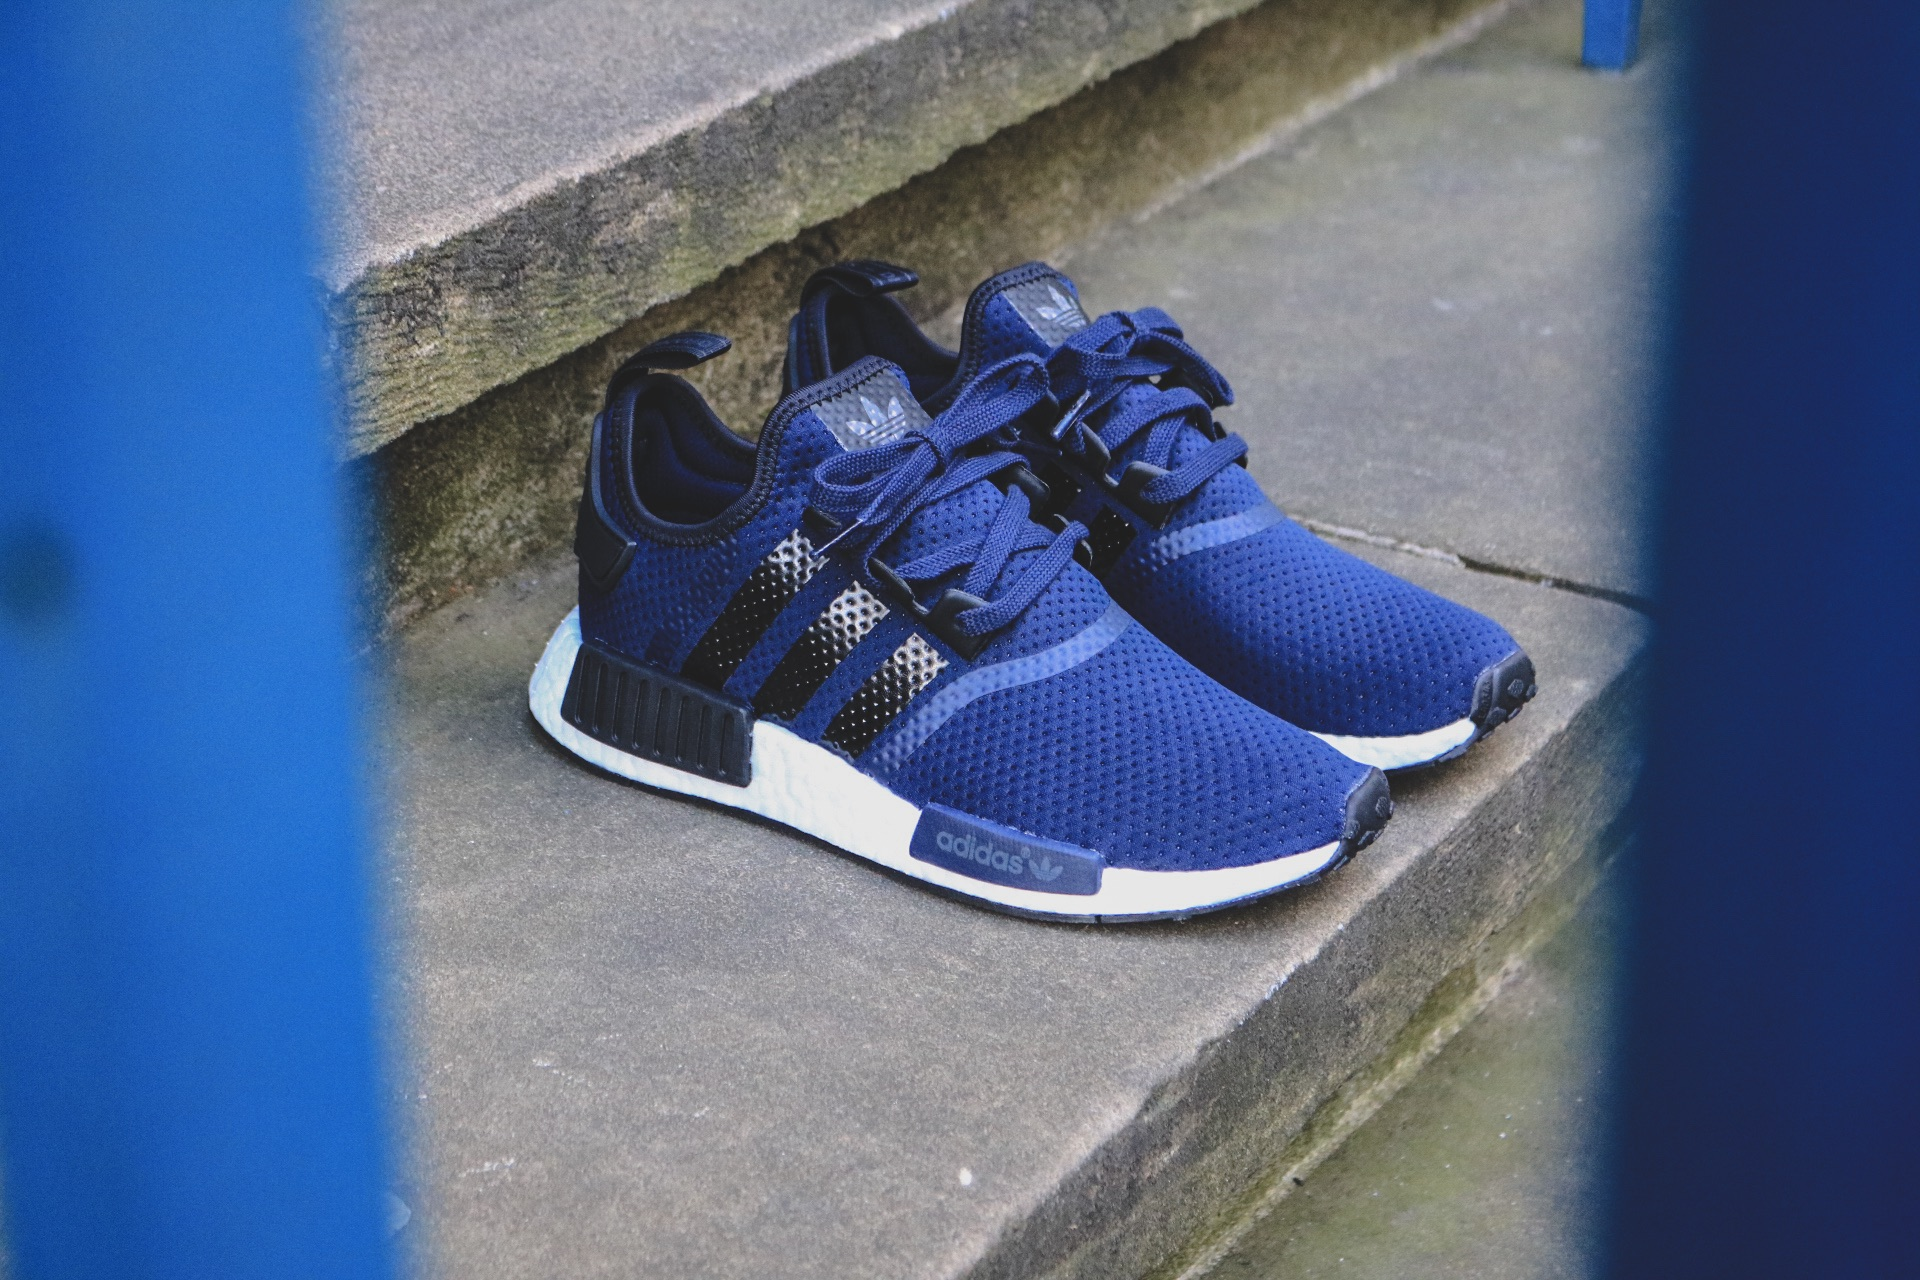 Adidas Nmd Uk Jd